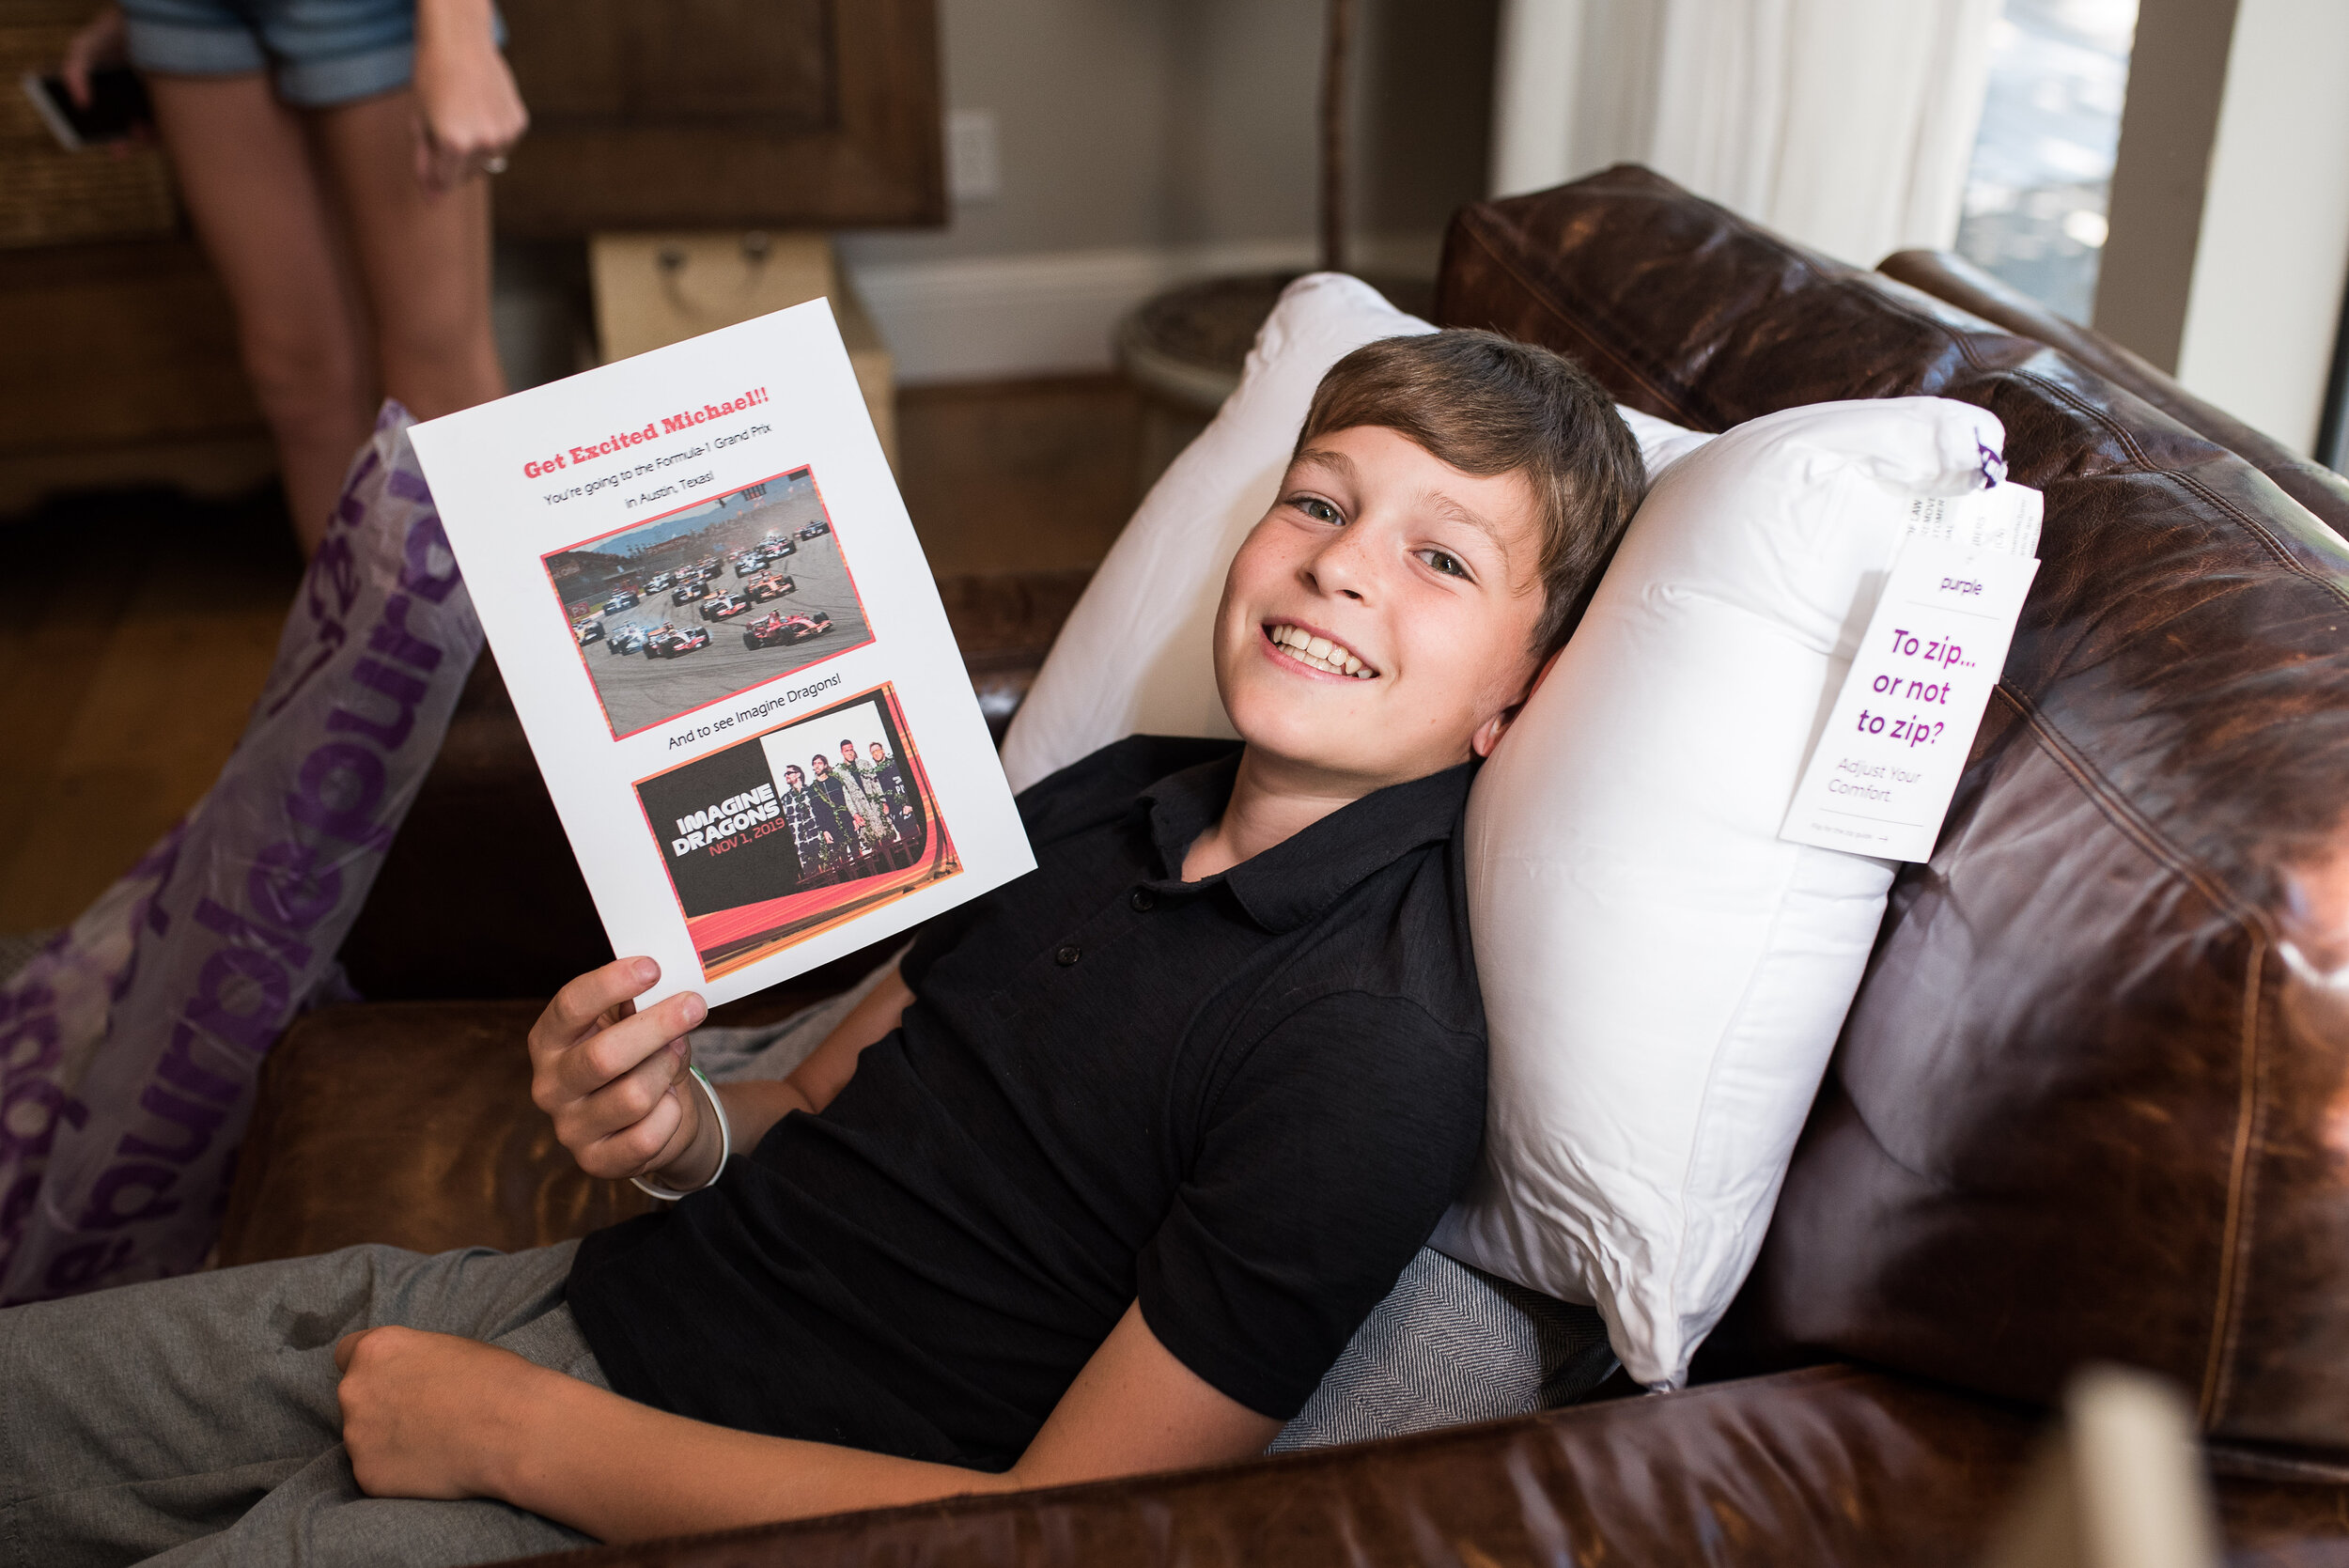 In a couple of weeks, we're heading to Austin to see an F-1 practice day and catch an Imagine Dragons concert. It was hard to tell if Michael was more excited about the weekend trip or the Purple pillow he wanted so badly.